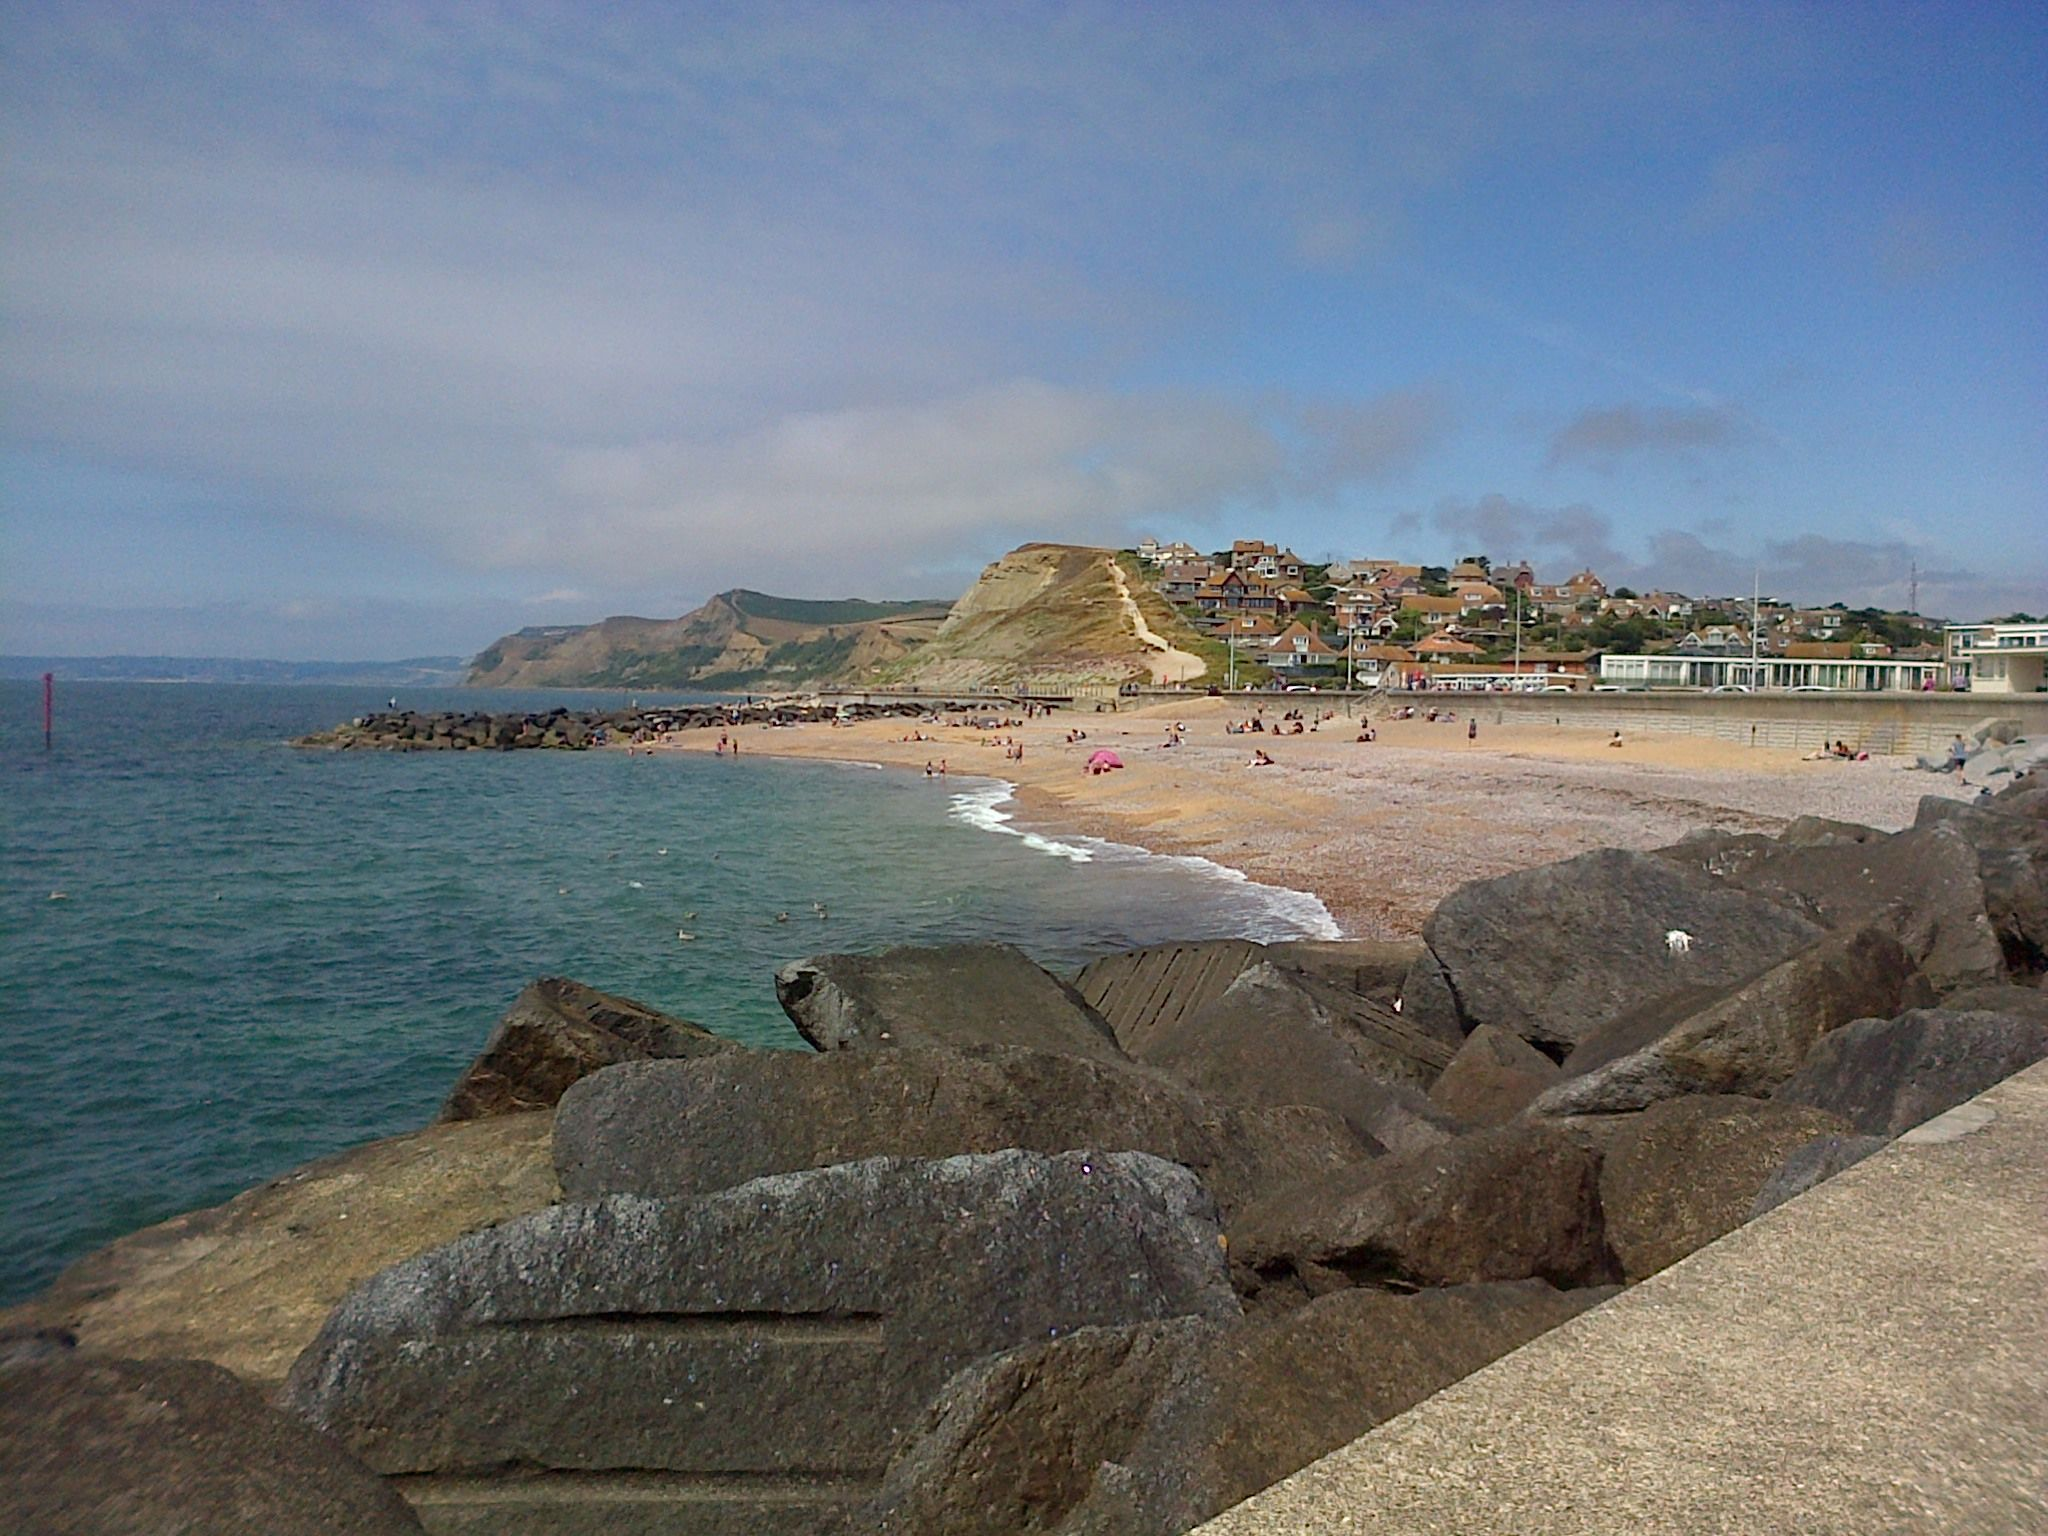 SUMMER TIME: Thanks to Cheryl Gaydon Chilton for this beautiful view of West Bay